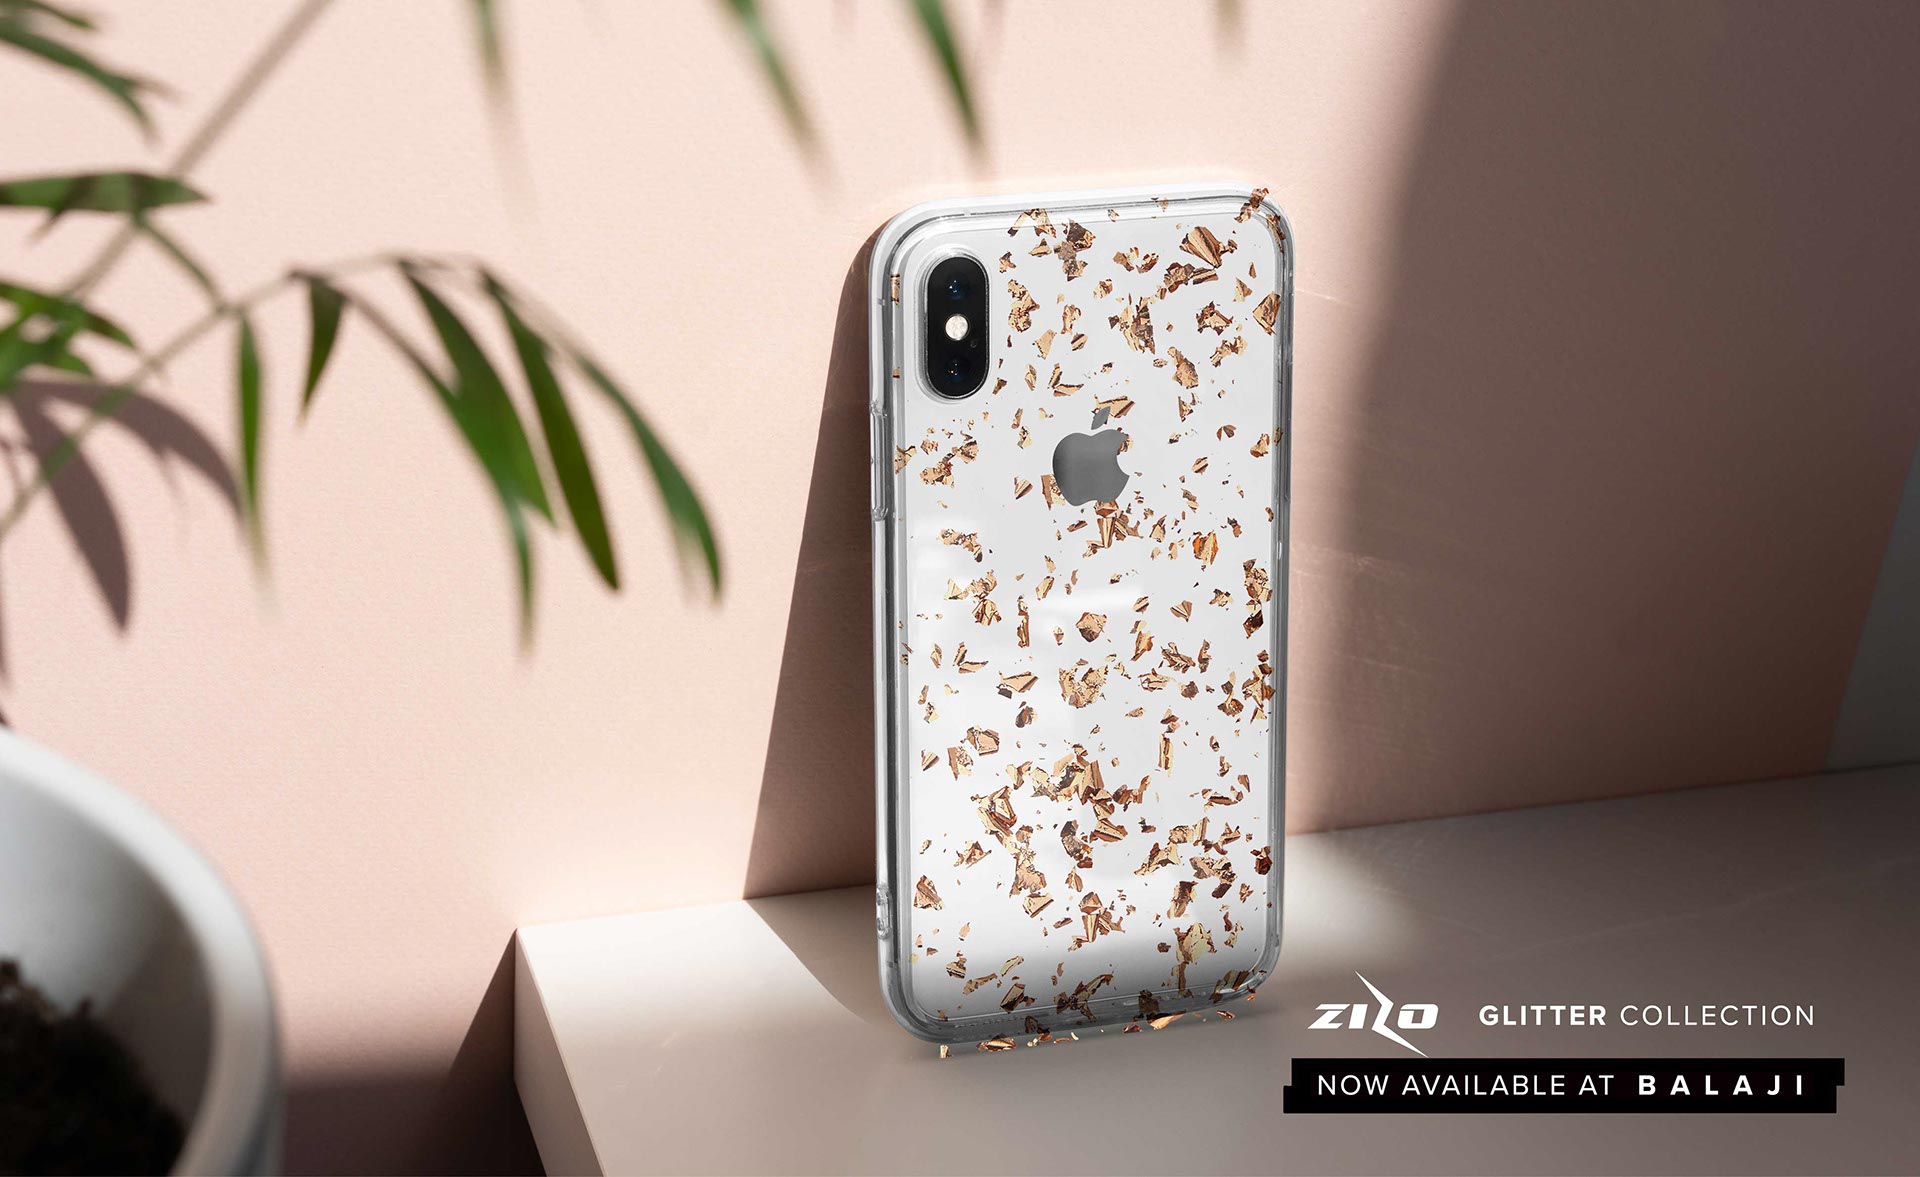 New Glitter Cases for iPhone from ZIZO Wireless